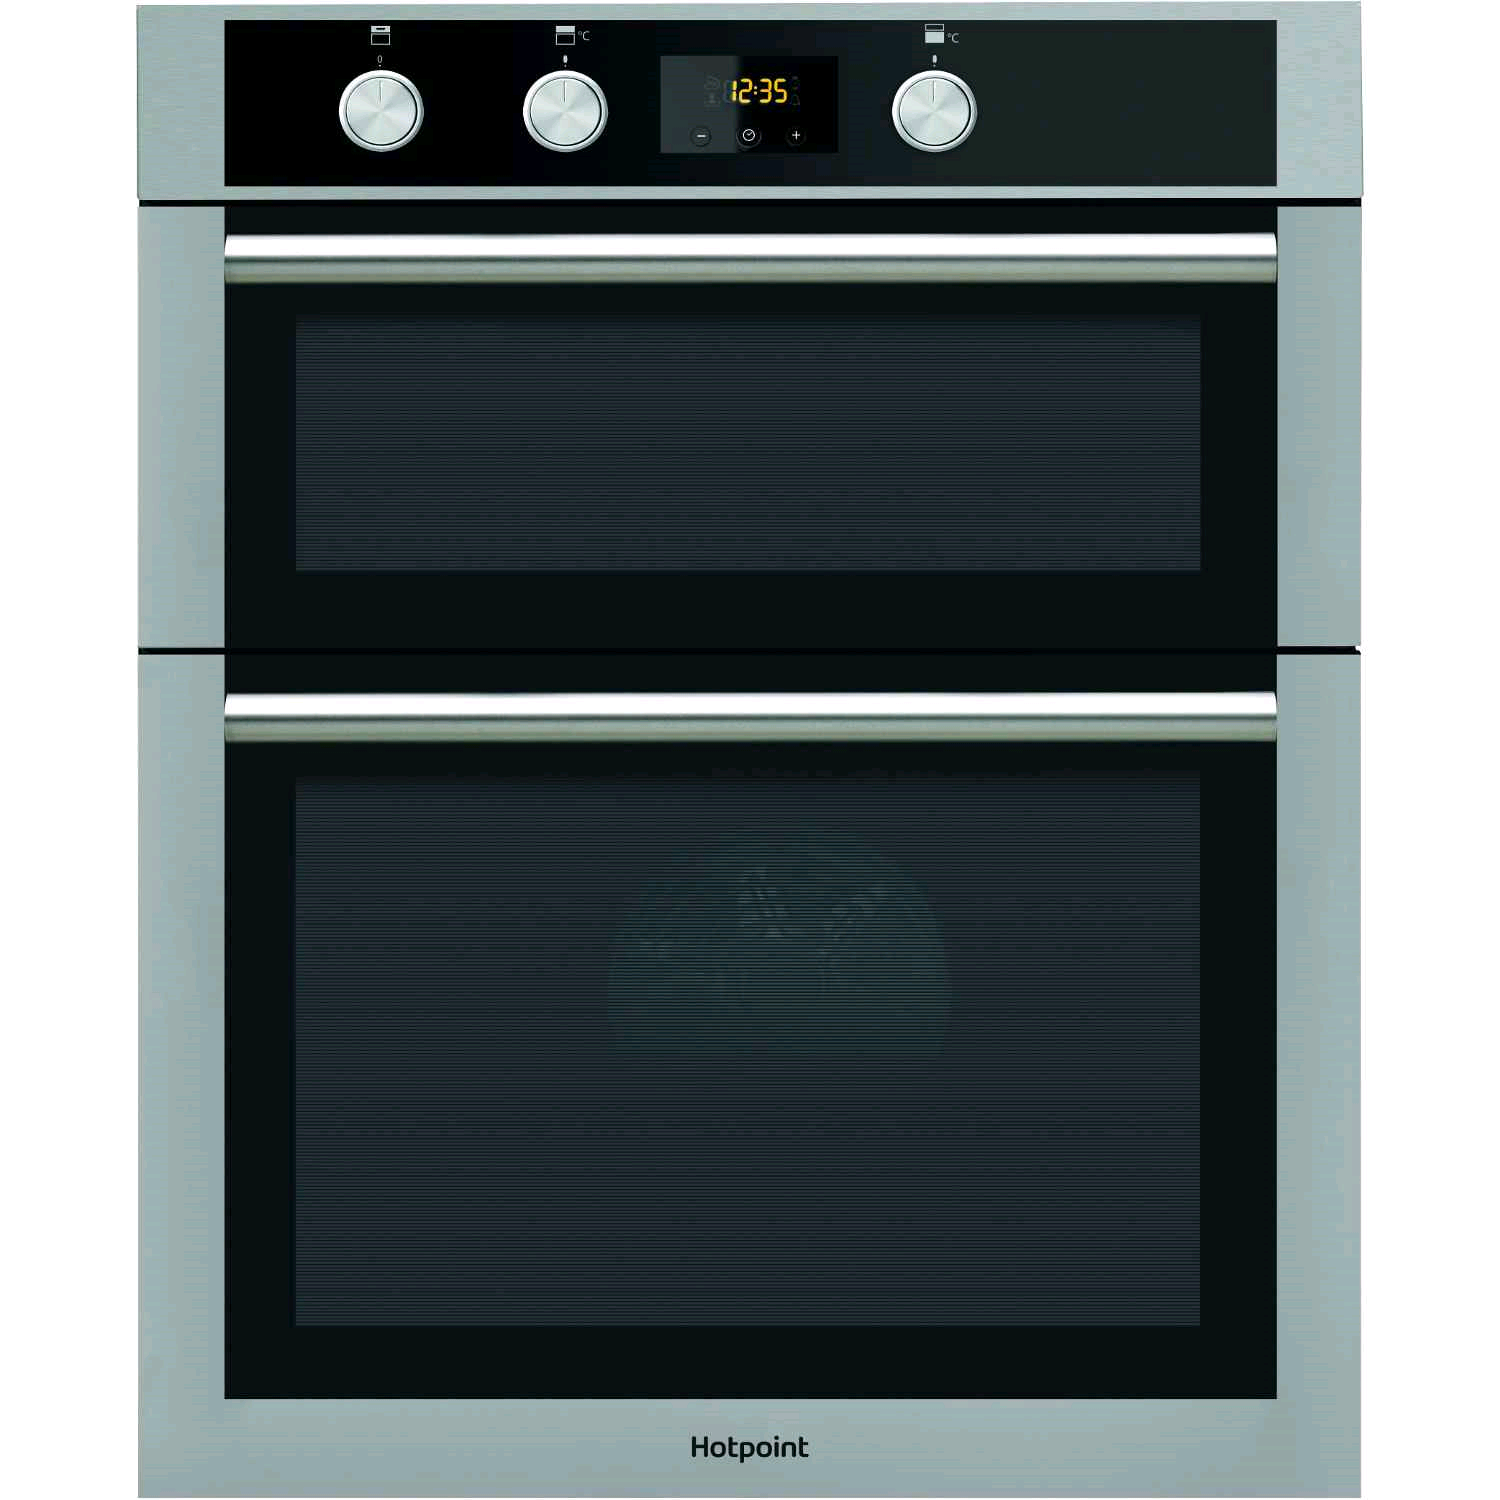 Hotpoint Built In Double Electric Oven Stainless Steel 74/42 Ltrs